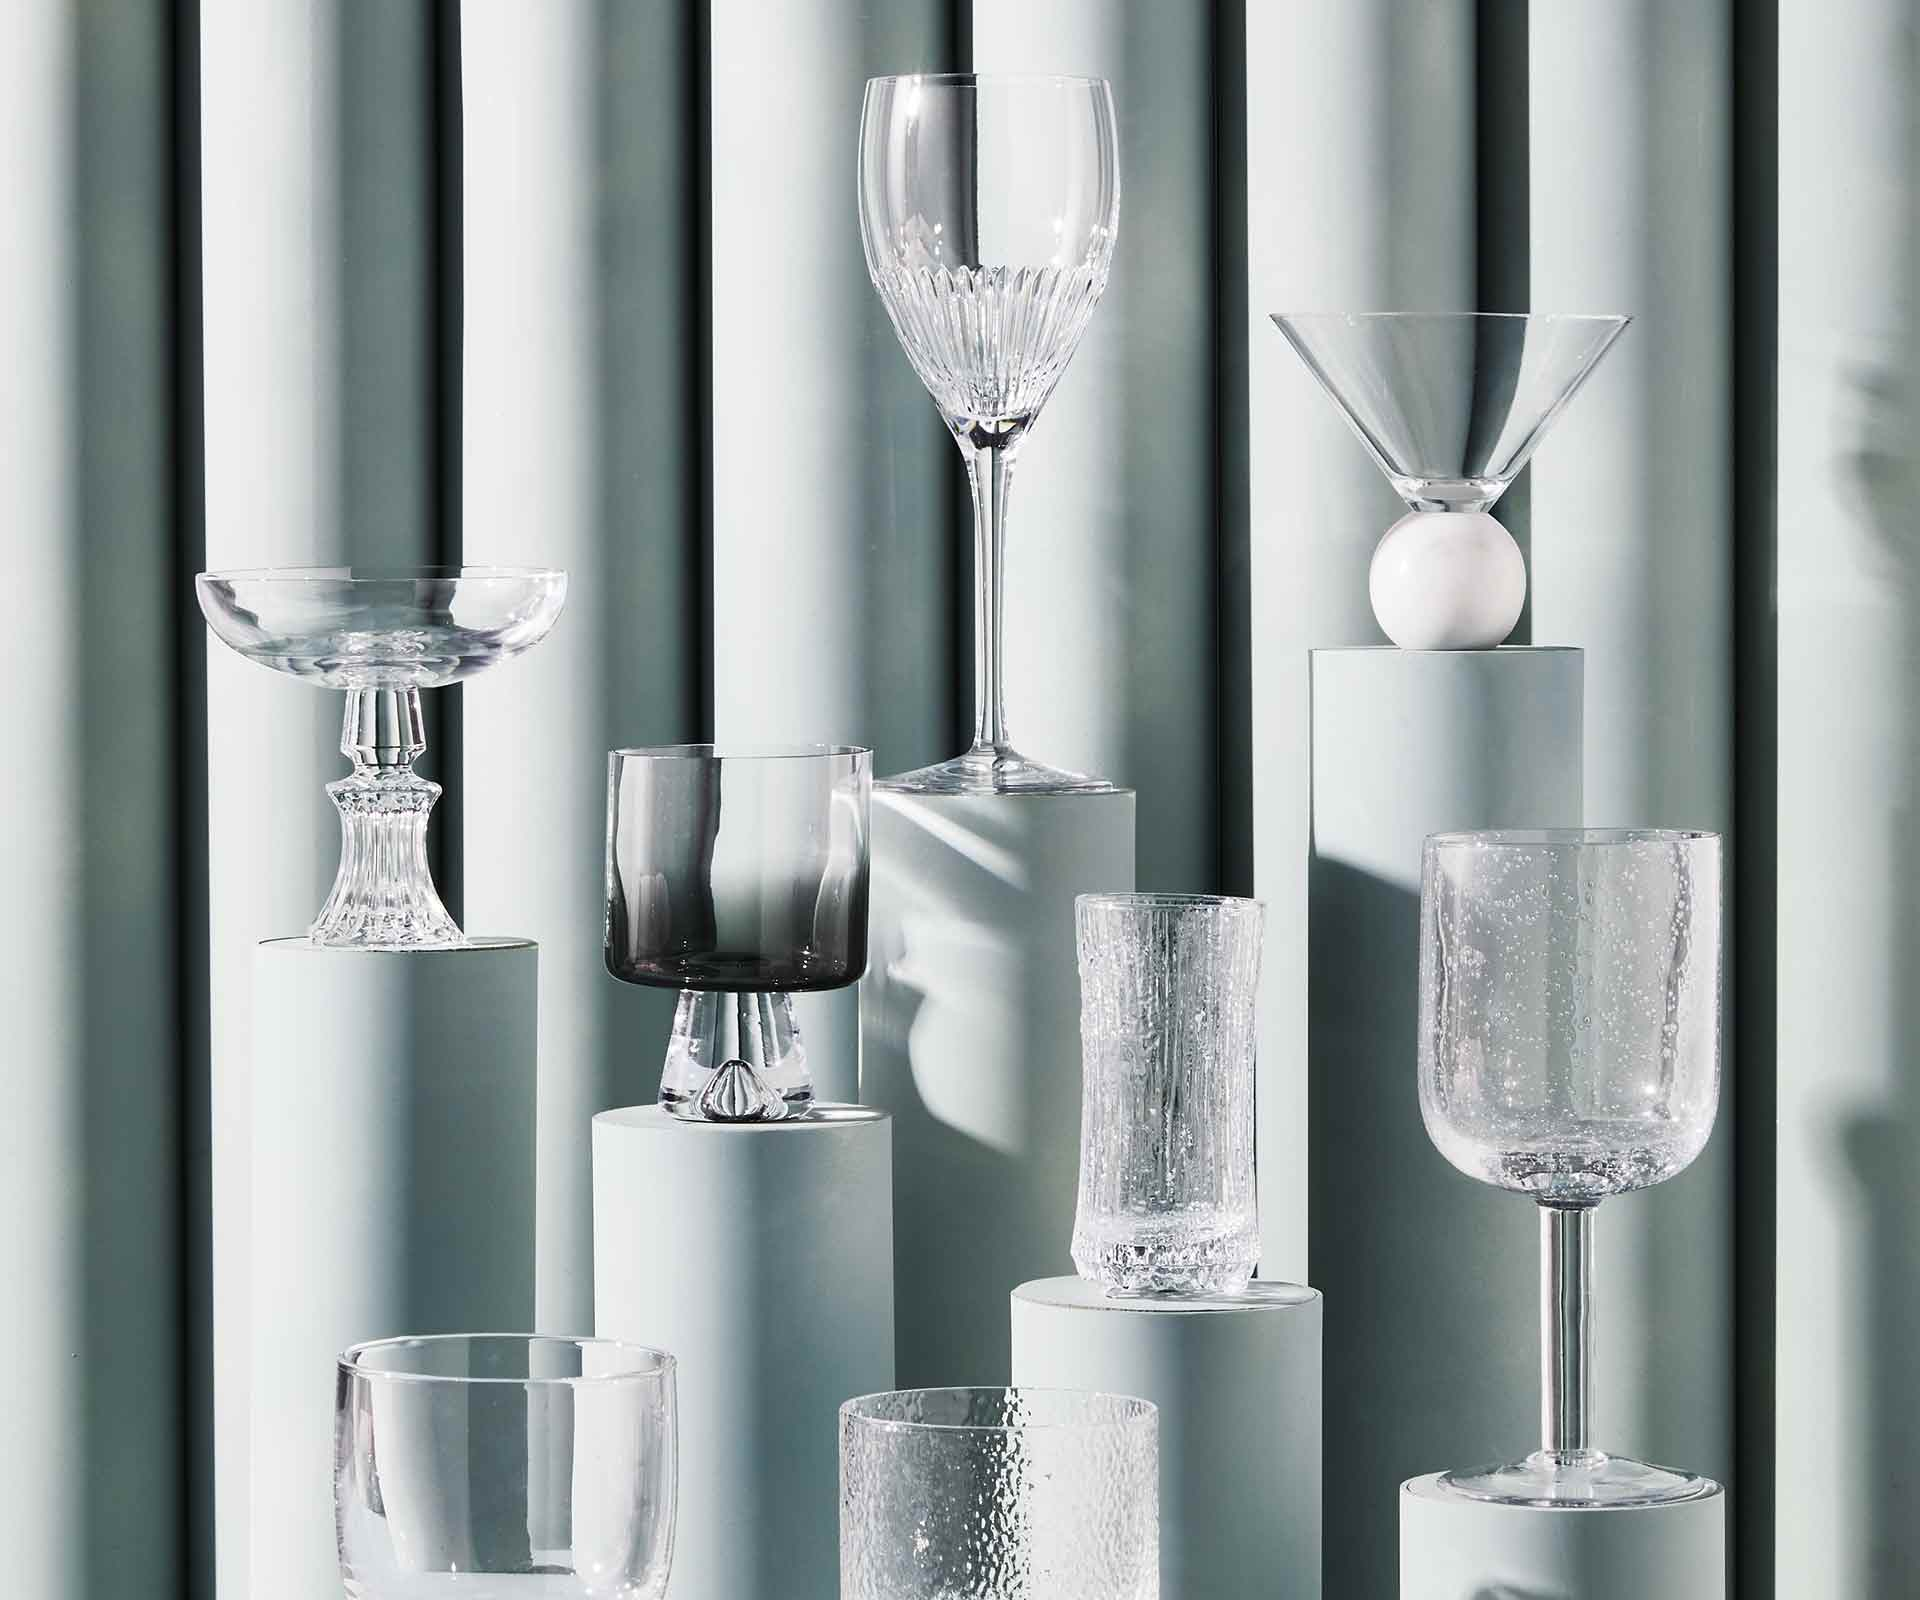 10 best glassware brands for cocktails and wine | Inside Out